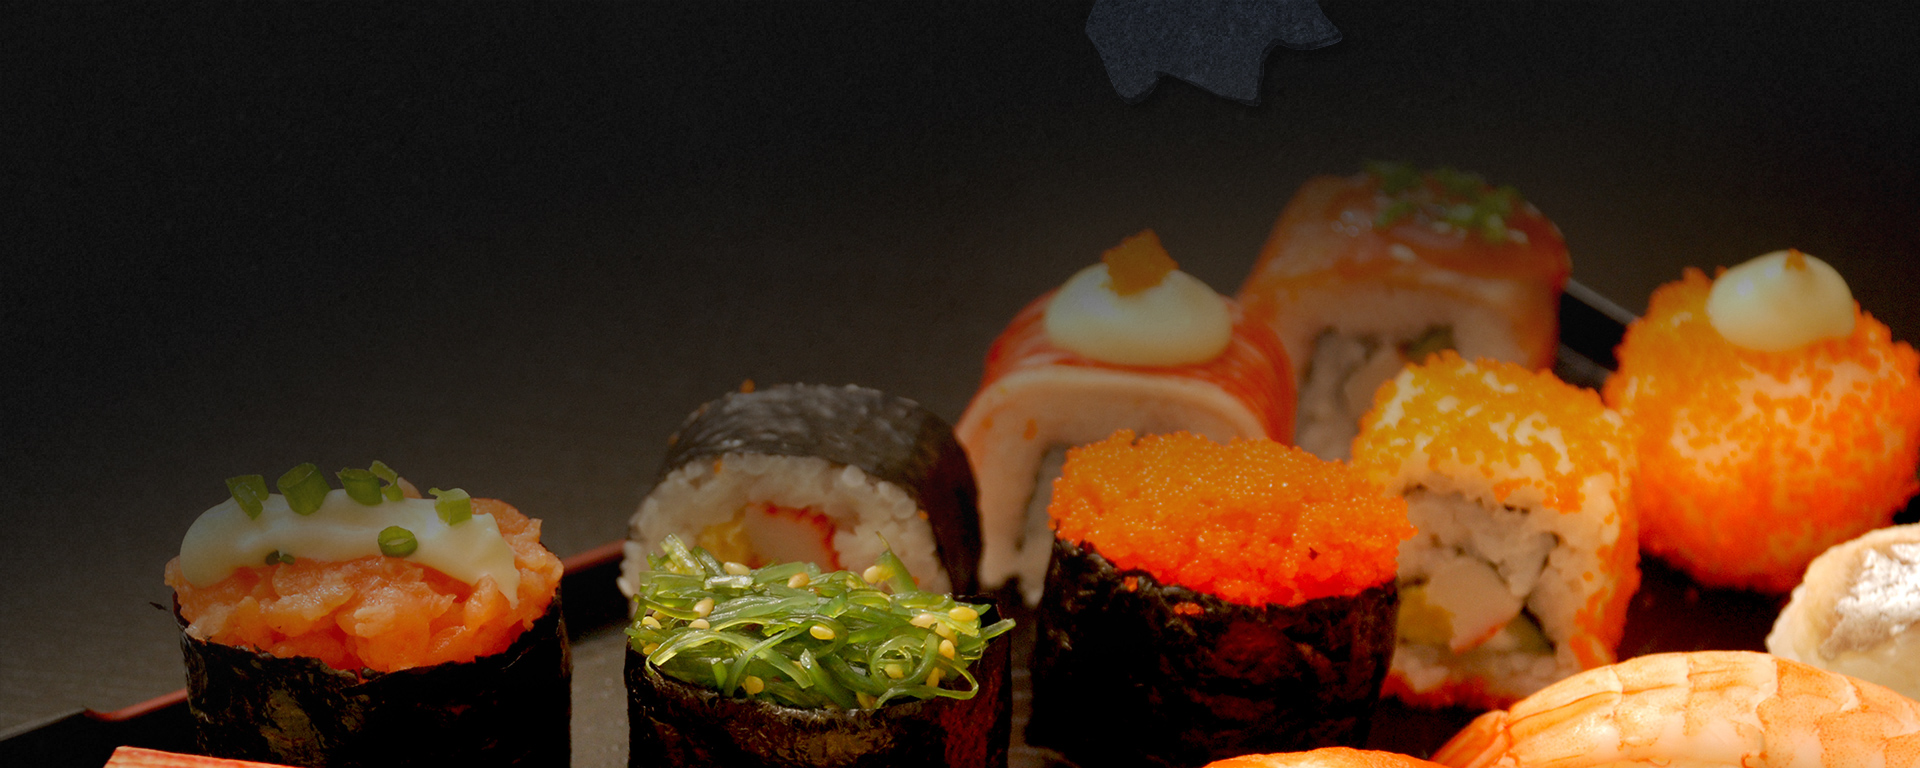 Sushi Station Vanløse – Find restaurant reviews, menu, prices, and hours of operation for sushi station on thefork.